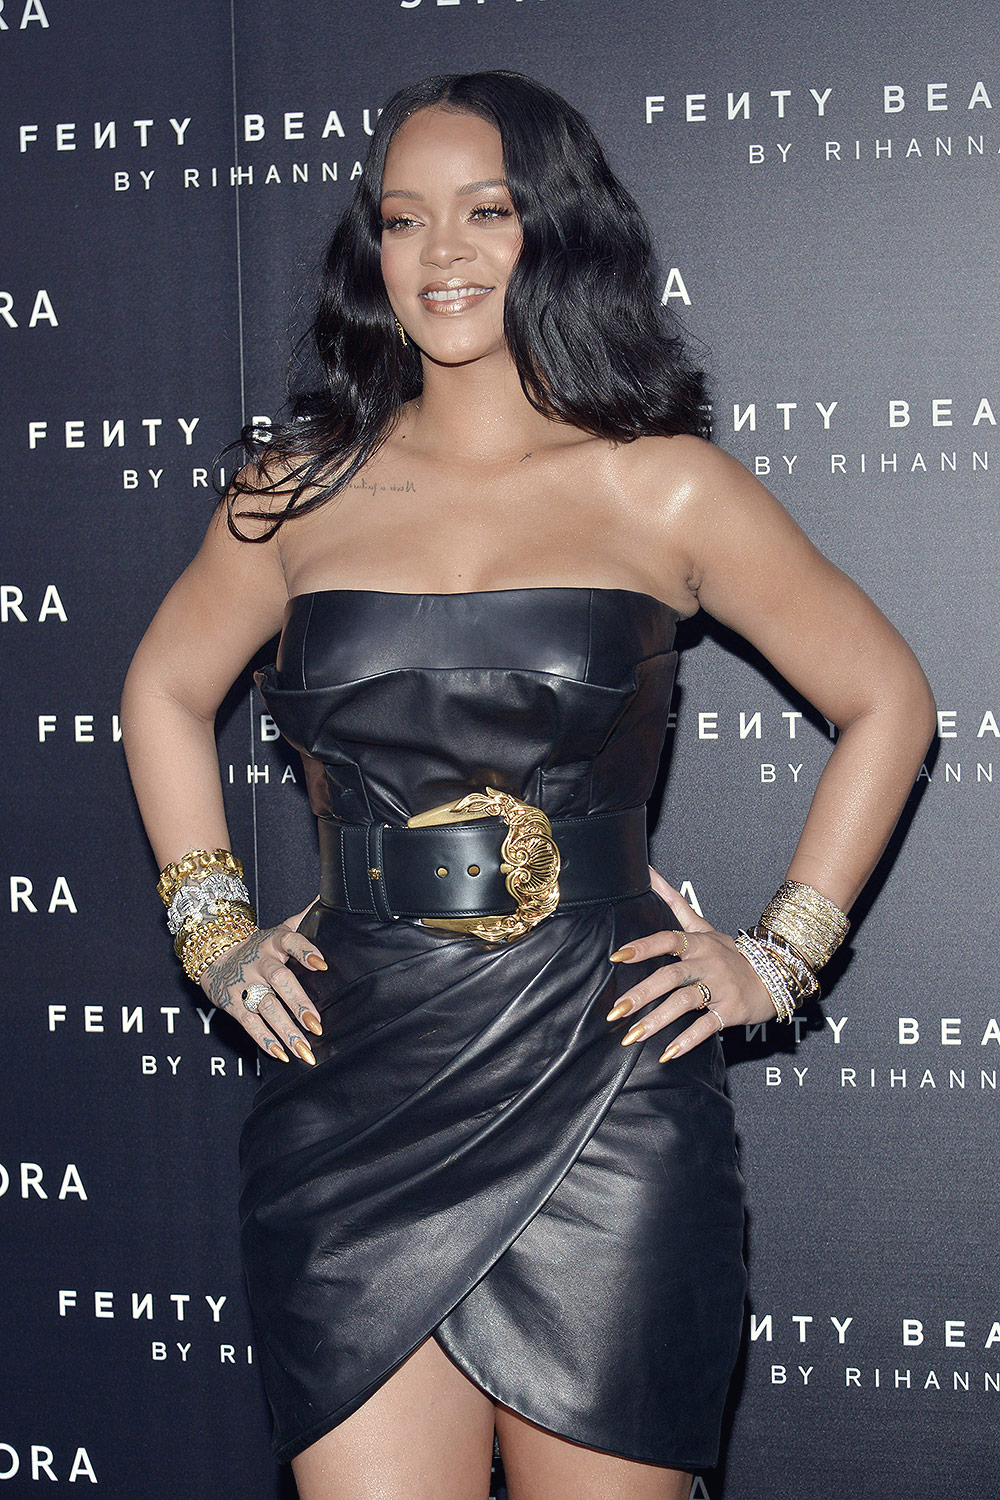 Rihanna attends Fenty by Rihanna makeup launch